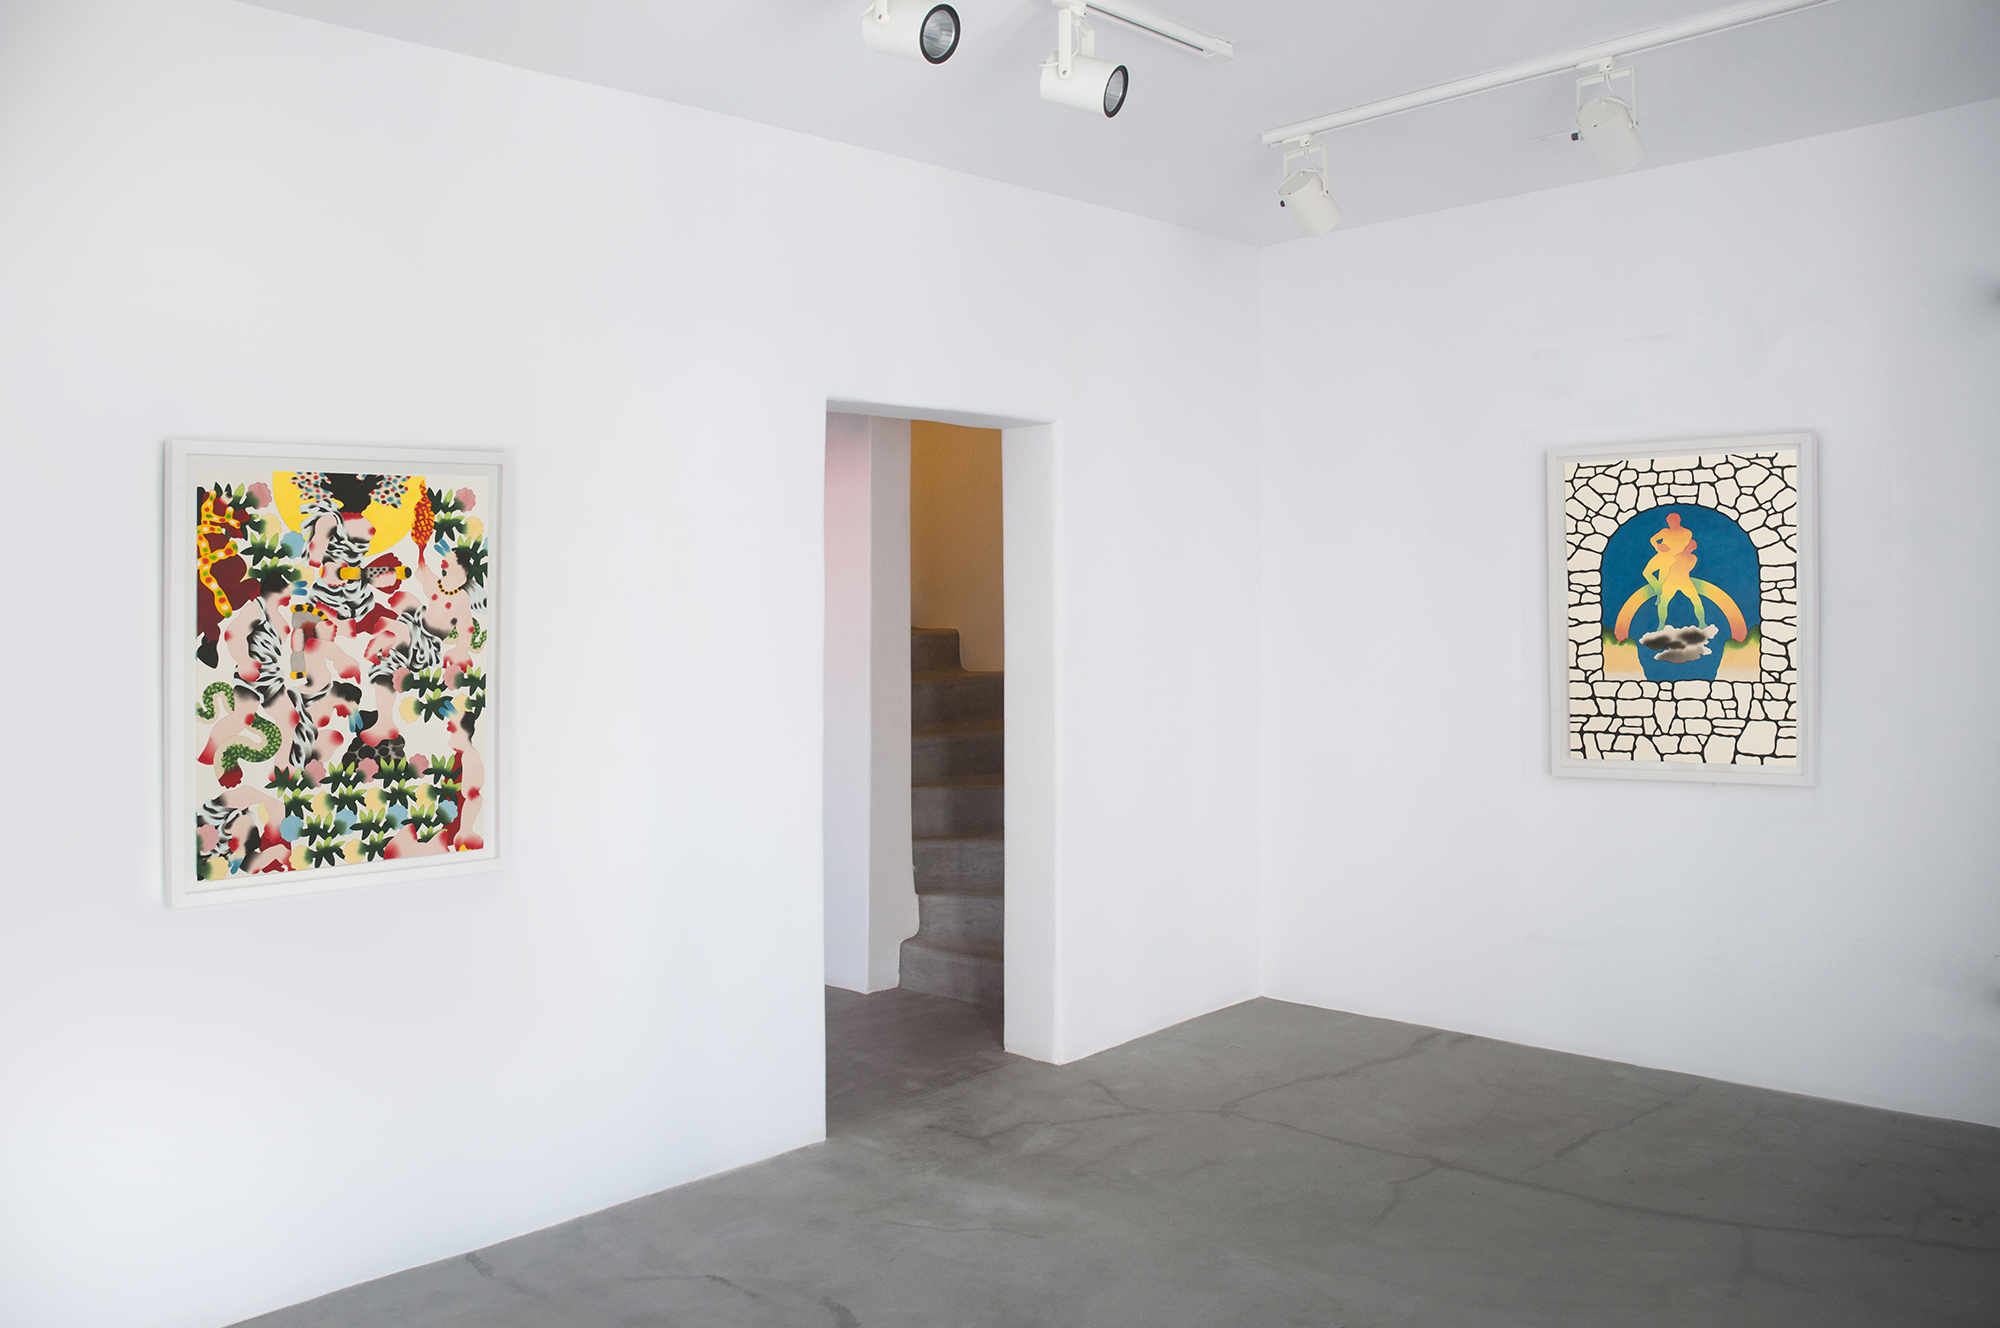 Mathew Palladino_Gigantomachy_Heracles VS Alcyoneus, Flowers from Gaea_2018_installation shot_4 copy.jpg